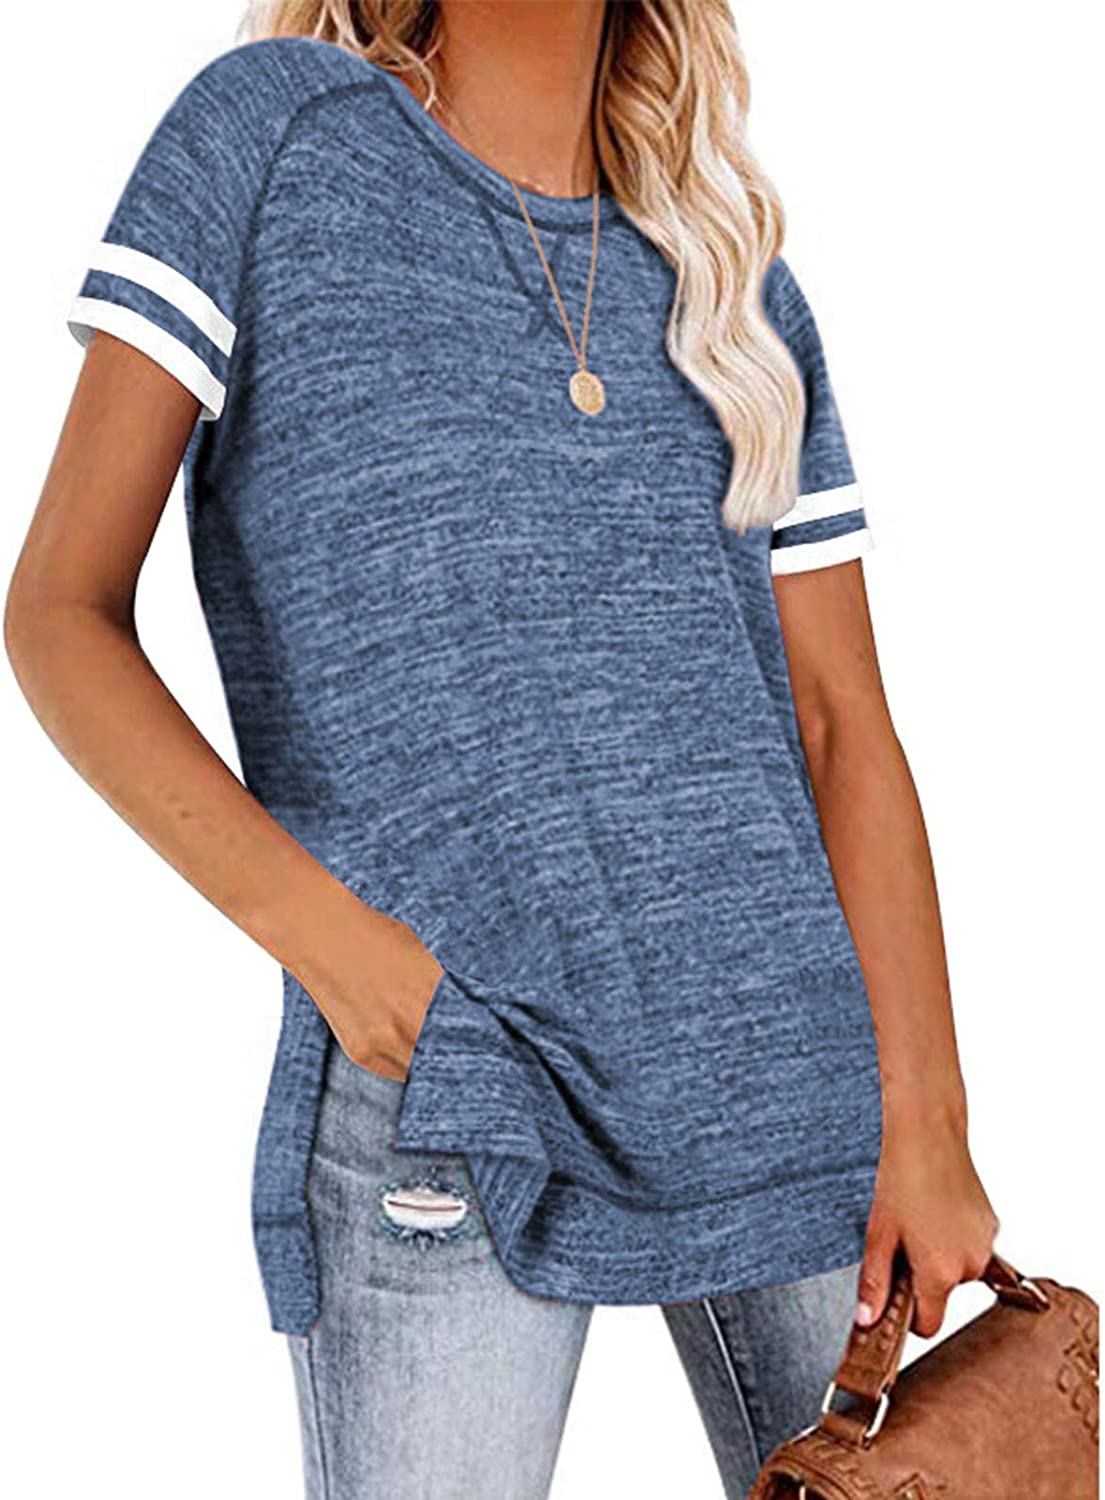 AODONG Shirts for Women Tops,Womens Leisure Solid Short Sleeves Round Neck Casual Loose Tops